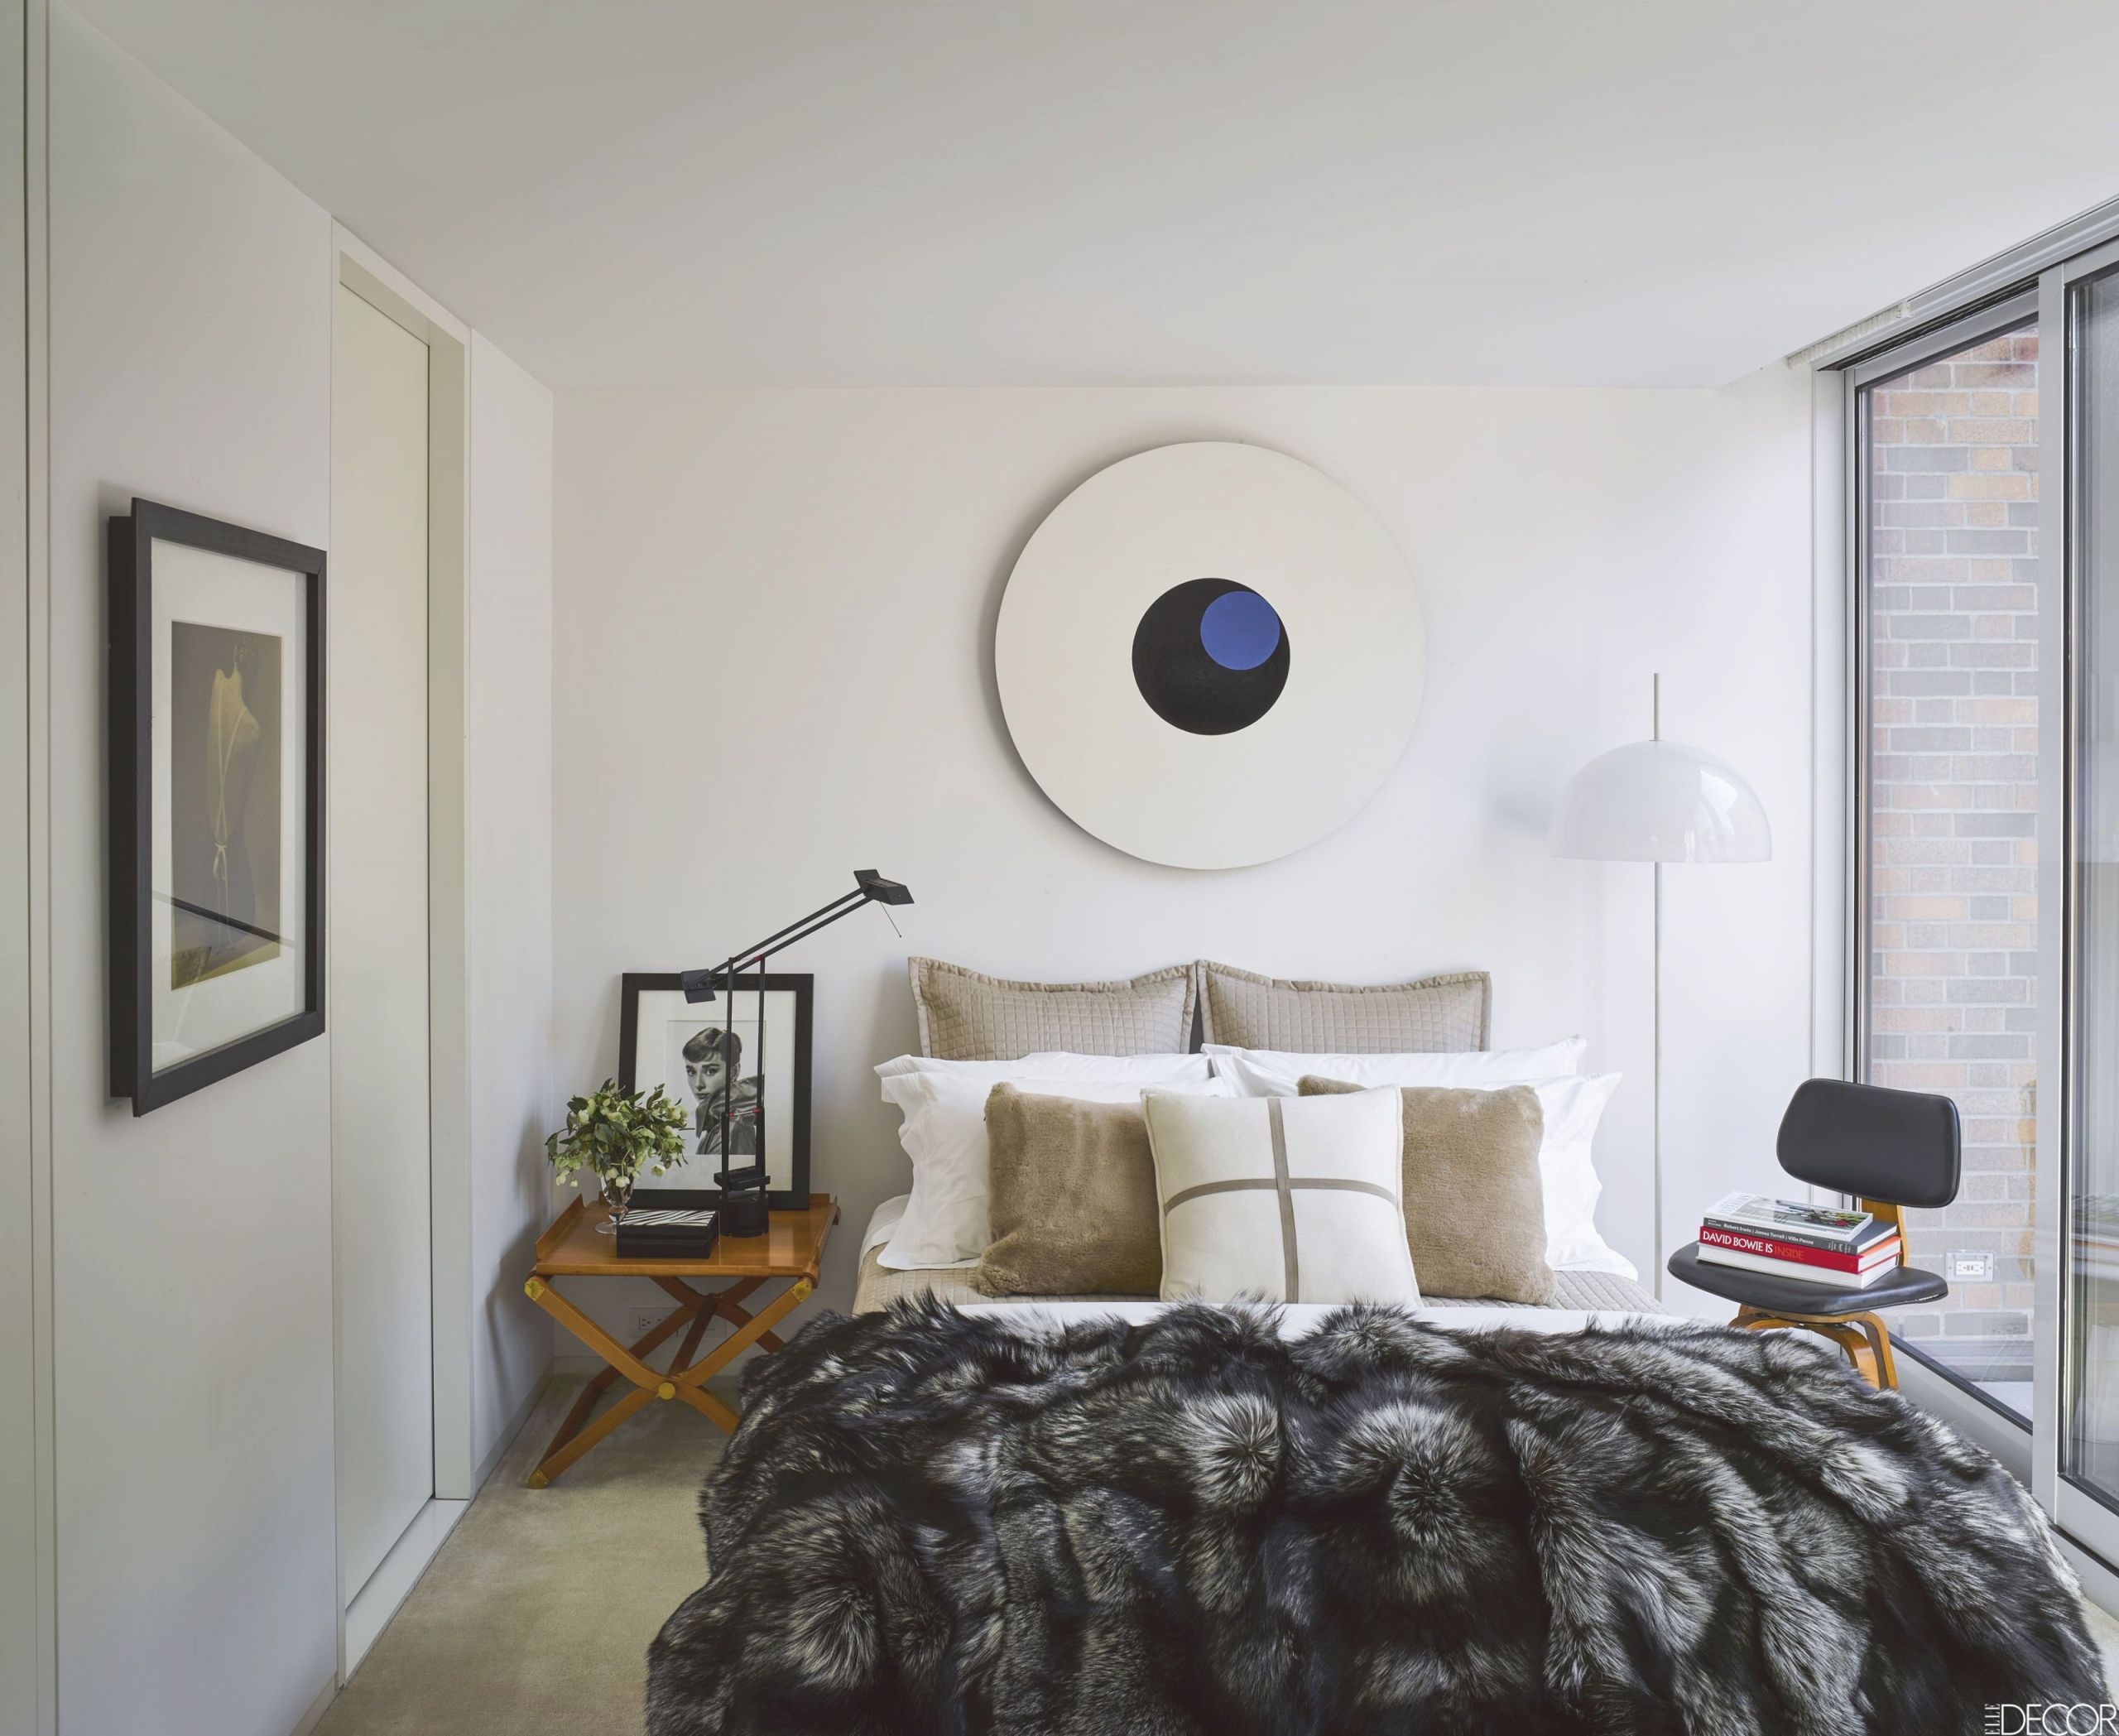 55 Small Bedroom Design Ideas – Decorating Tips For Small inside Small Bedroom Decoration Ideas